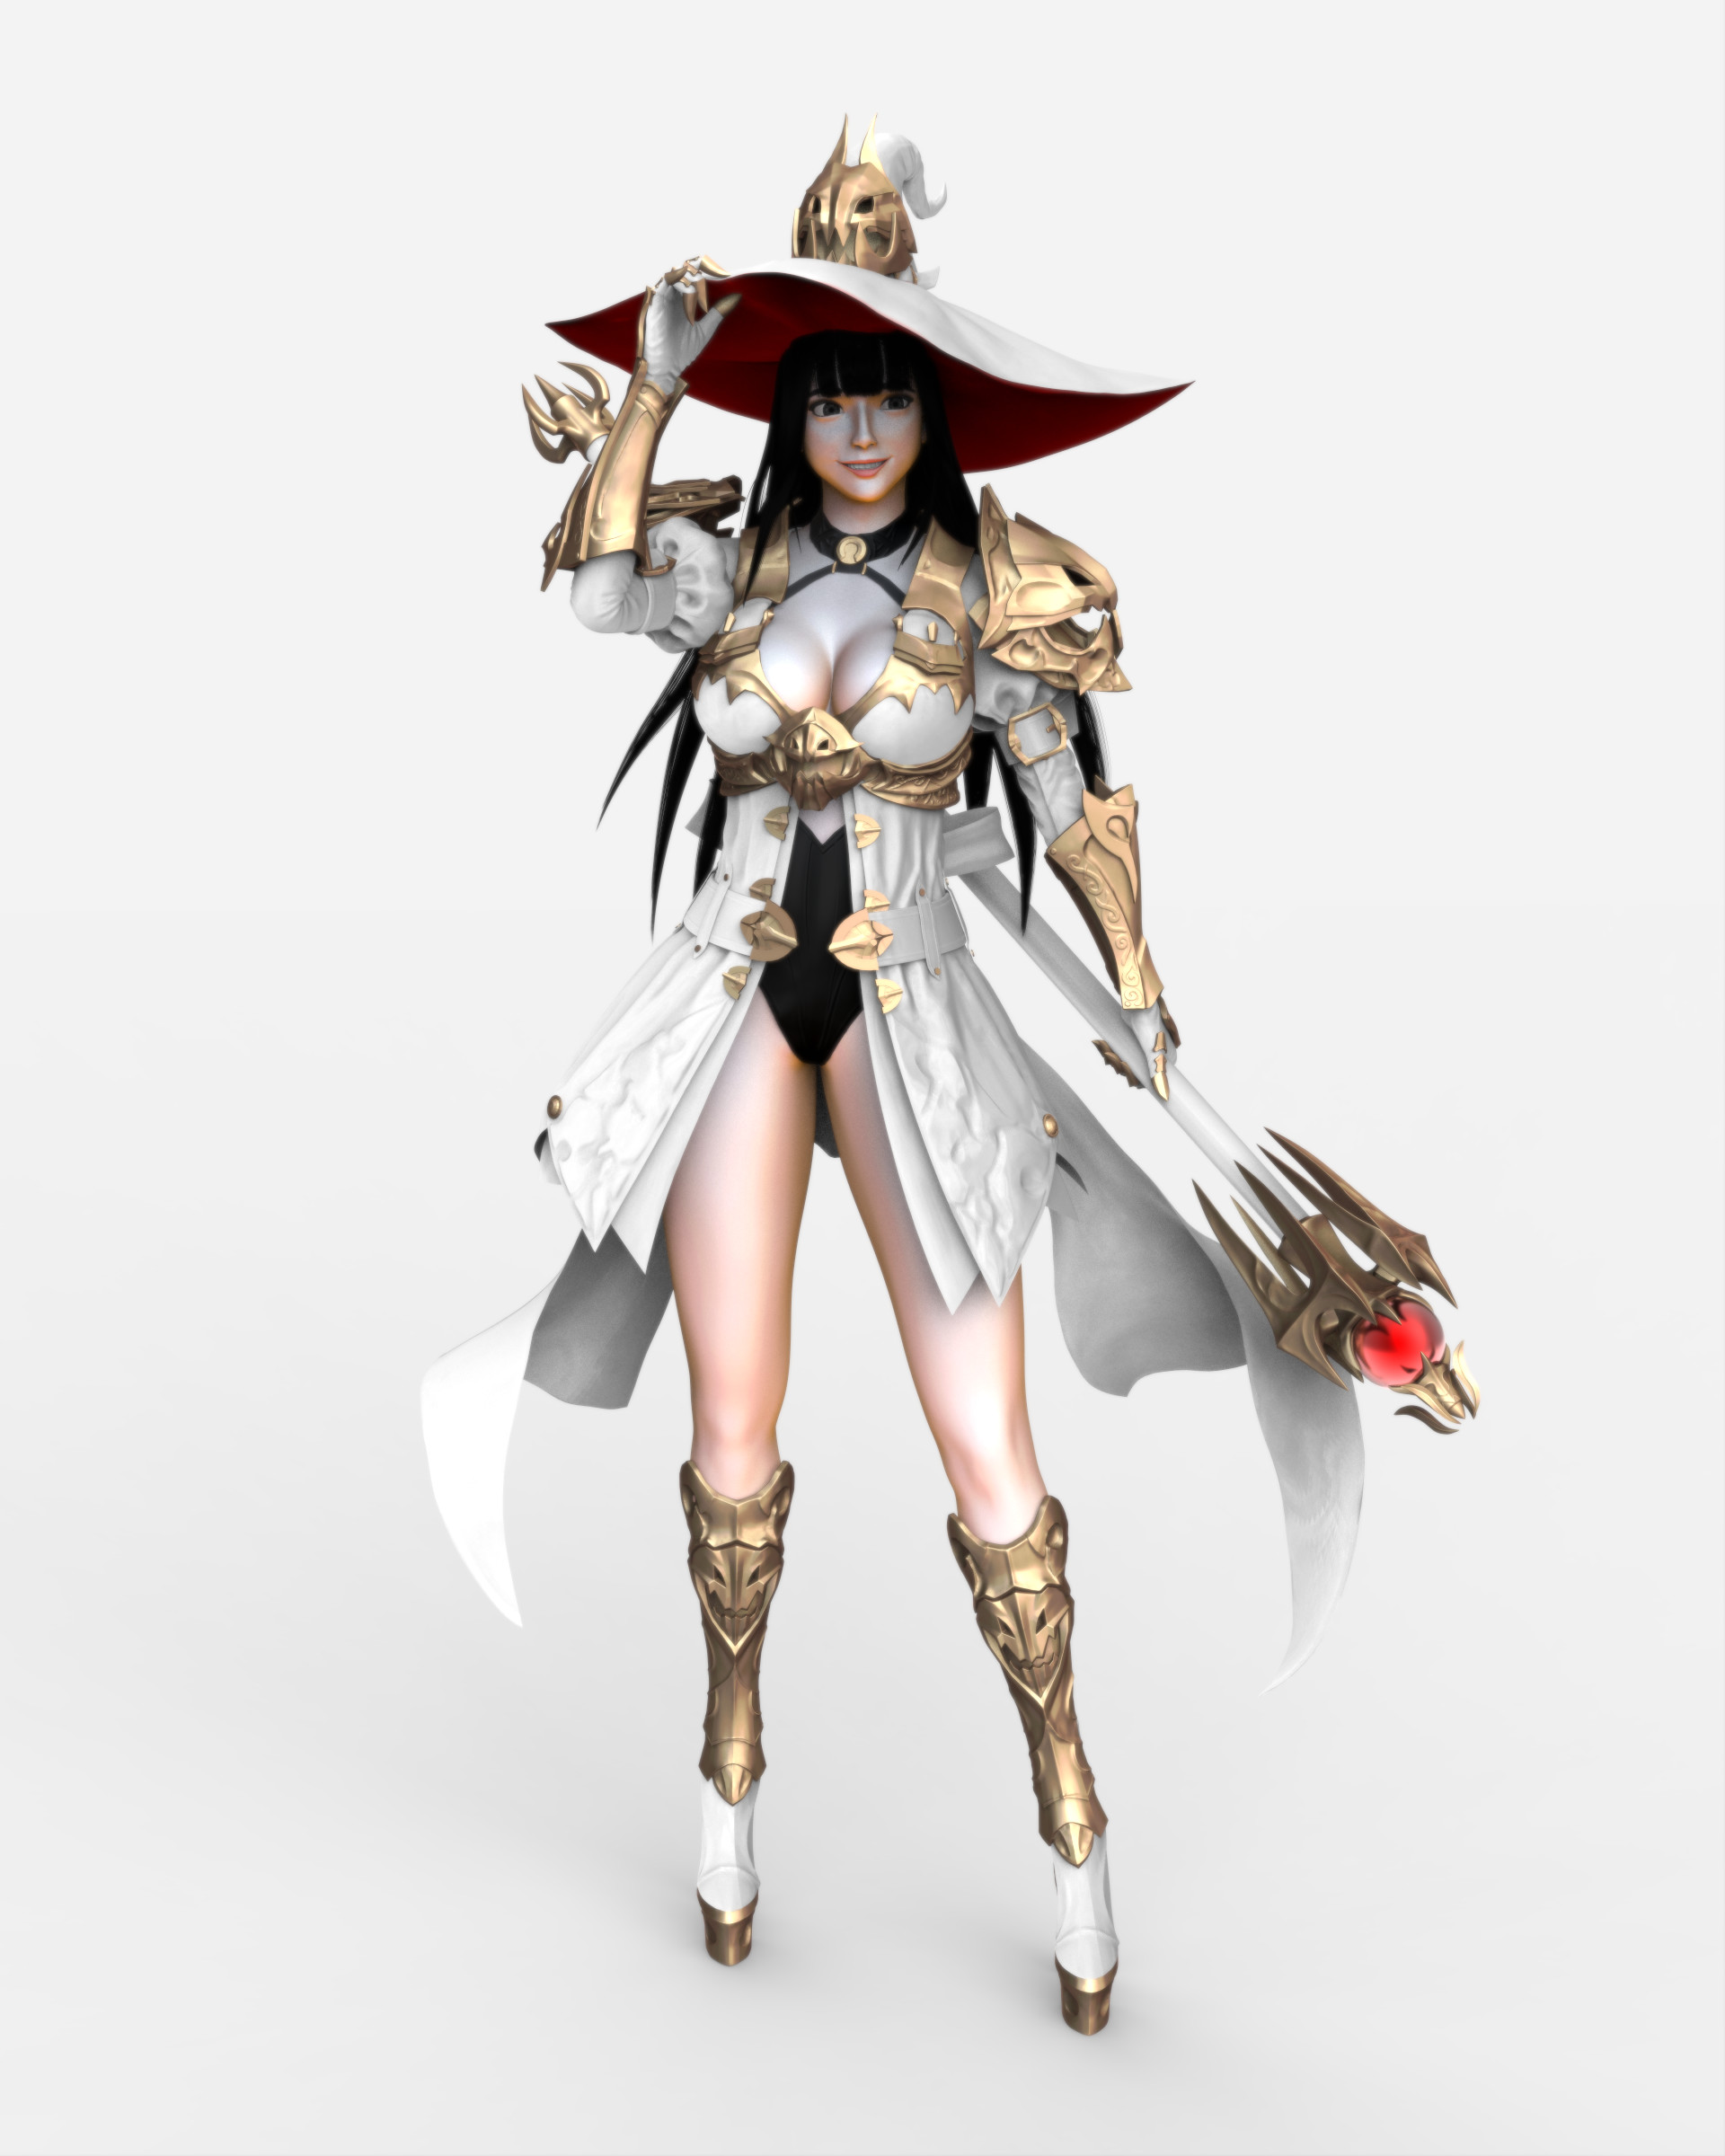 White Witch Render as Refrence